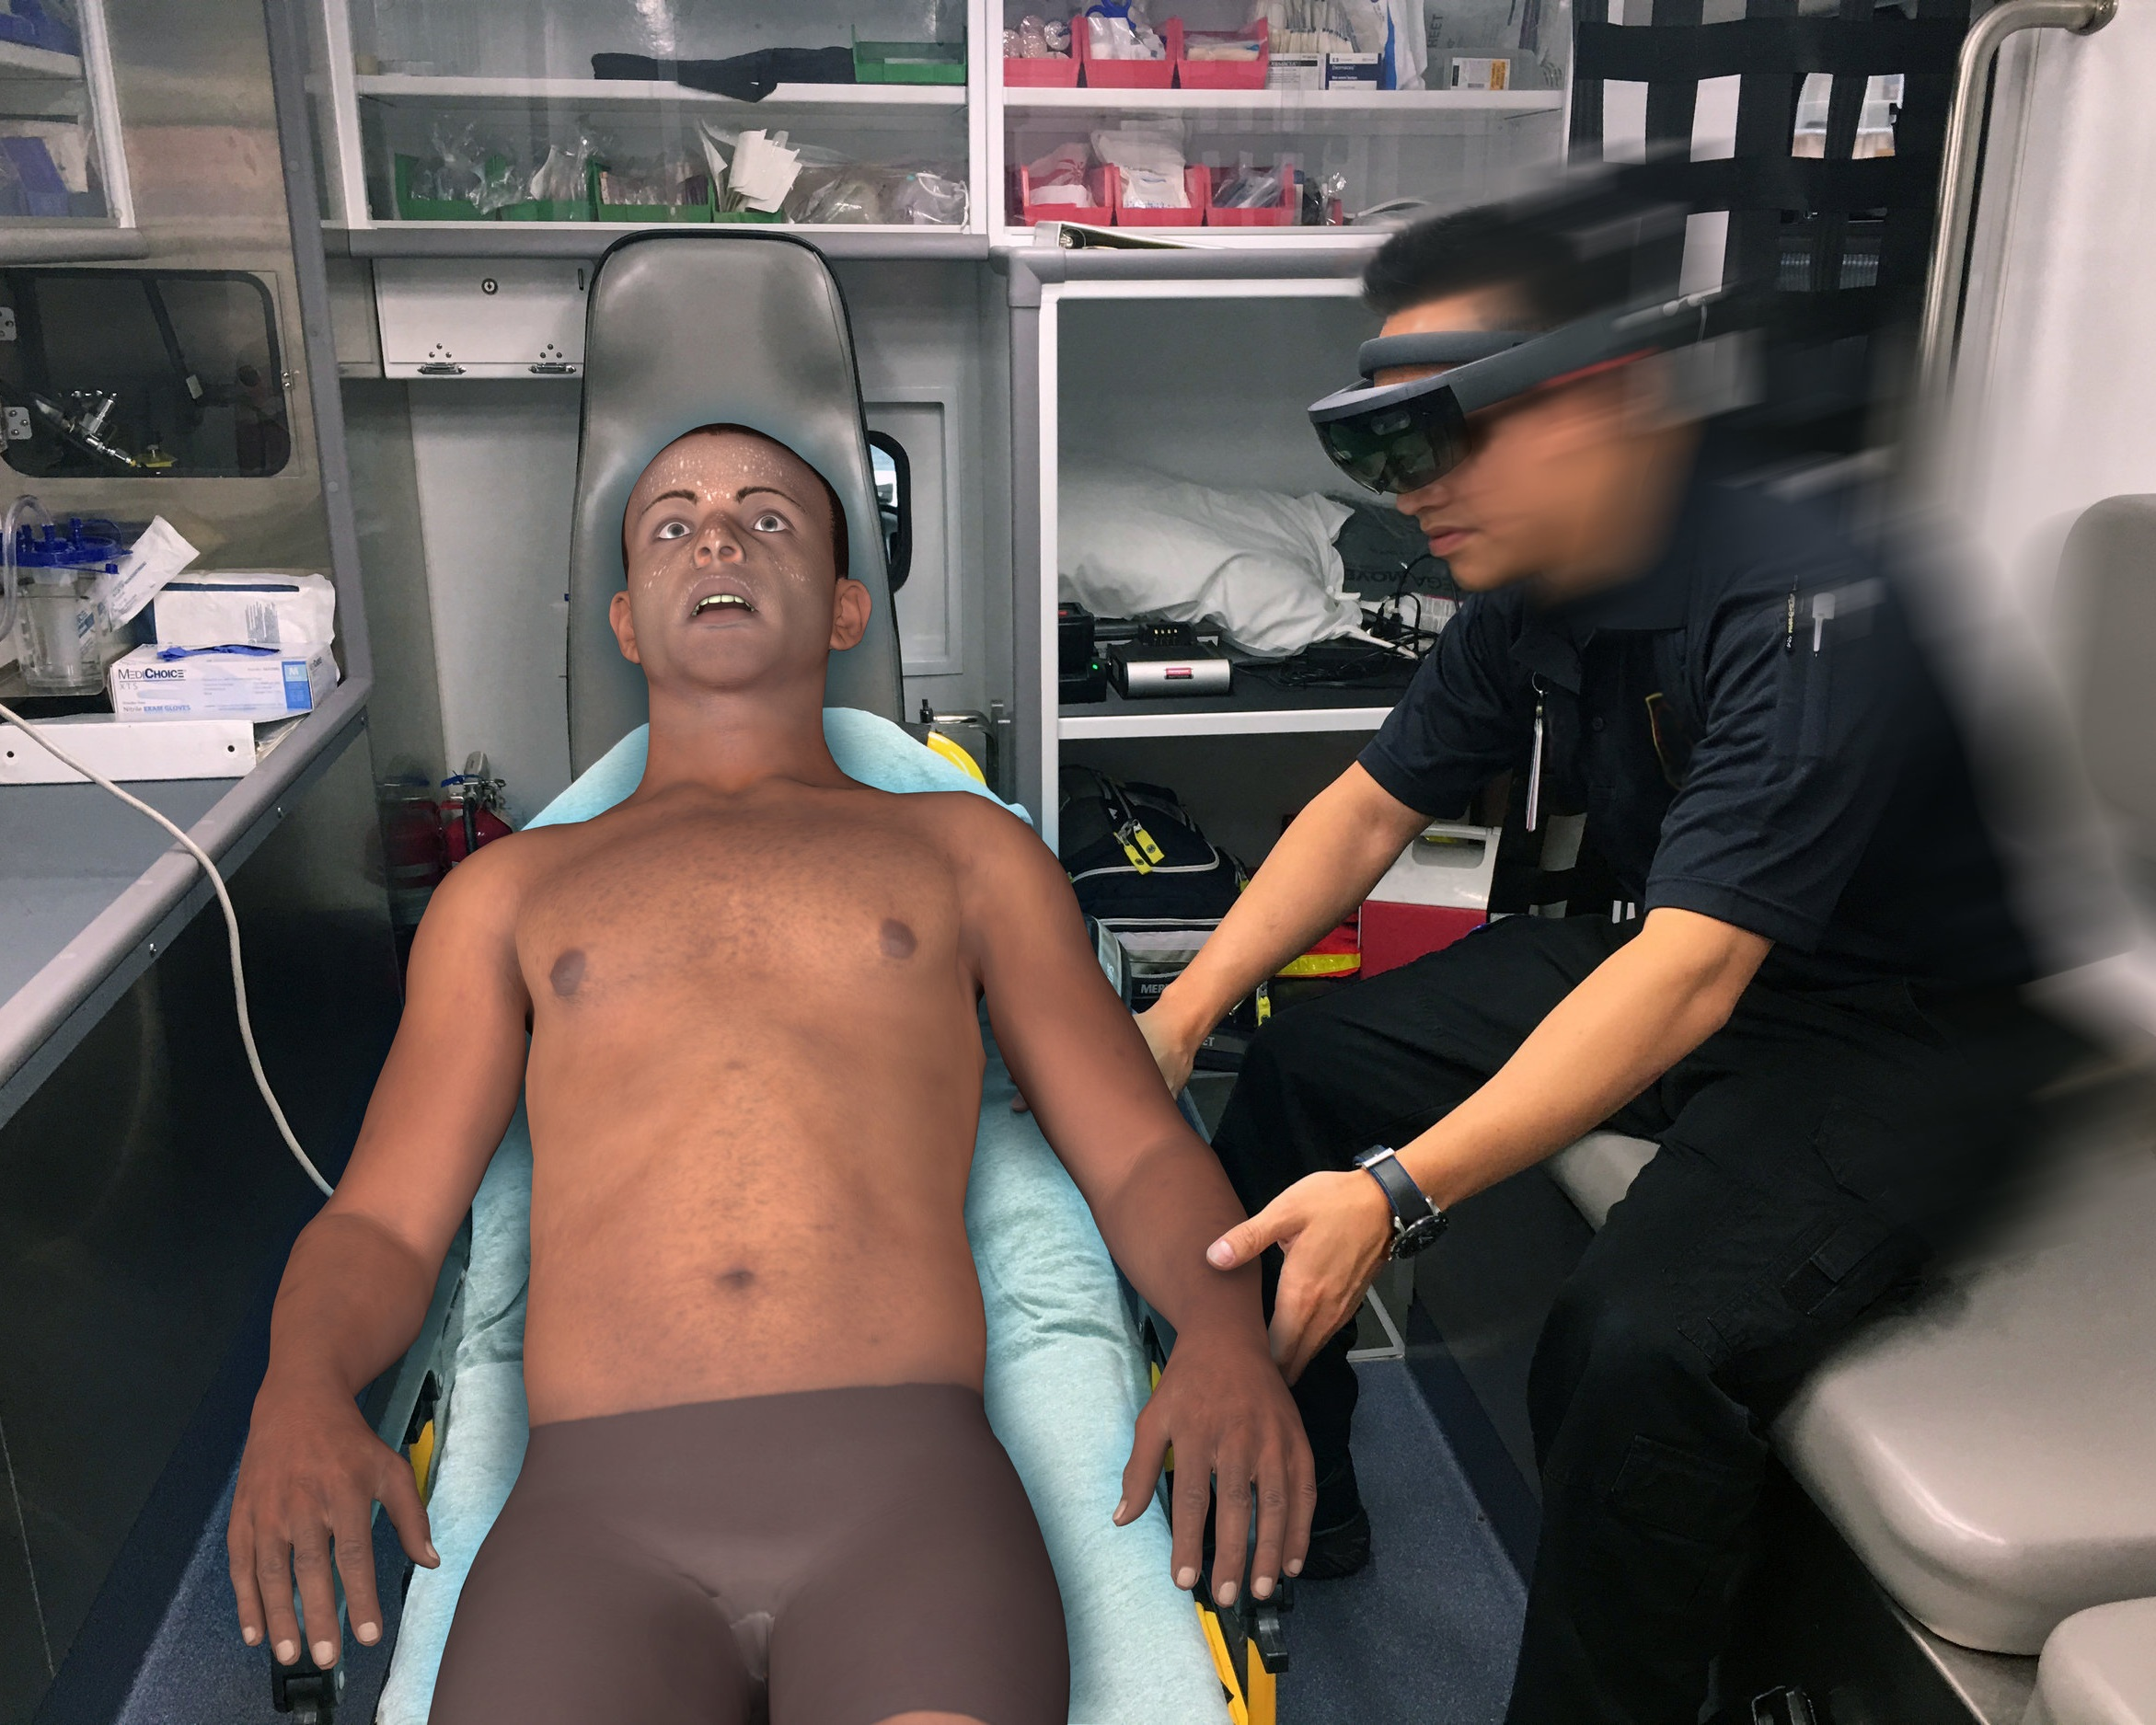 Realistic Situations - With PerSim®, you can provide pre-hospital medical training in the settings where first responders actually provide life-saving care: at the incident site, in the back of an ambulance, on a gurney in transit.